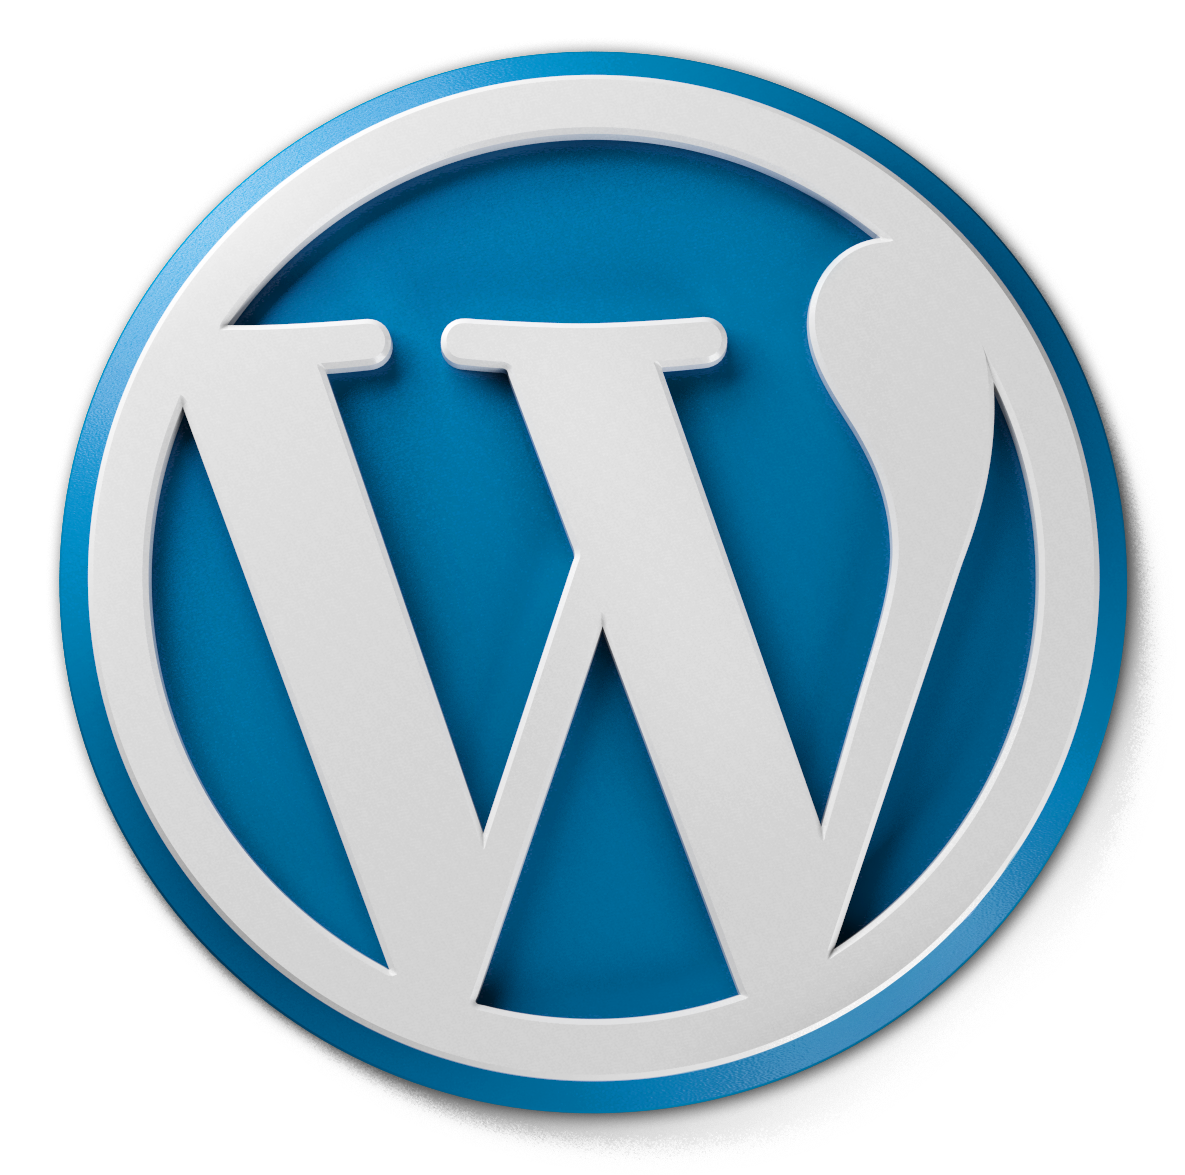 WordPress 4.5 Custom Logo API: Getting the logo URL